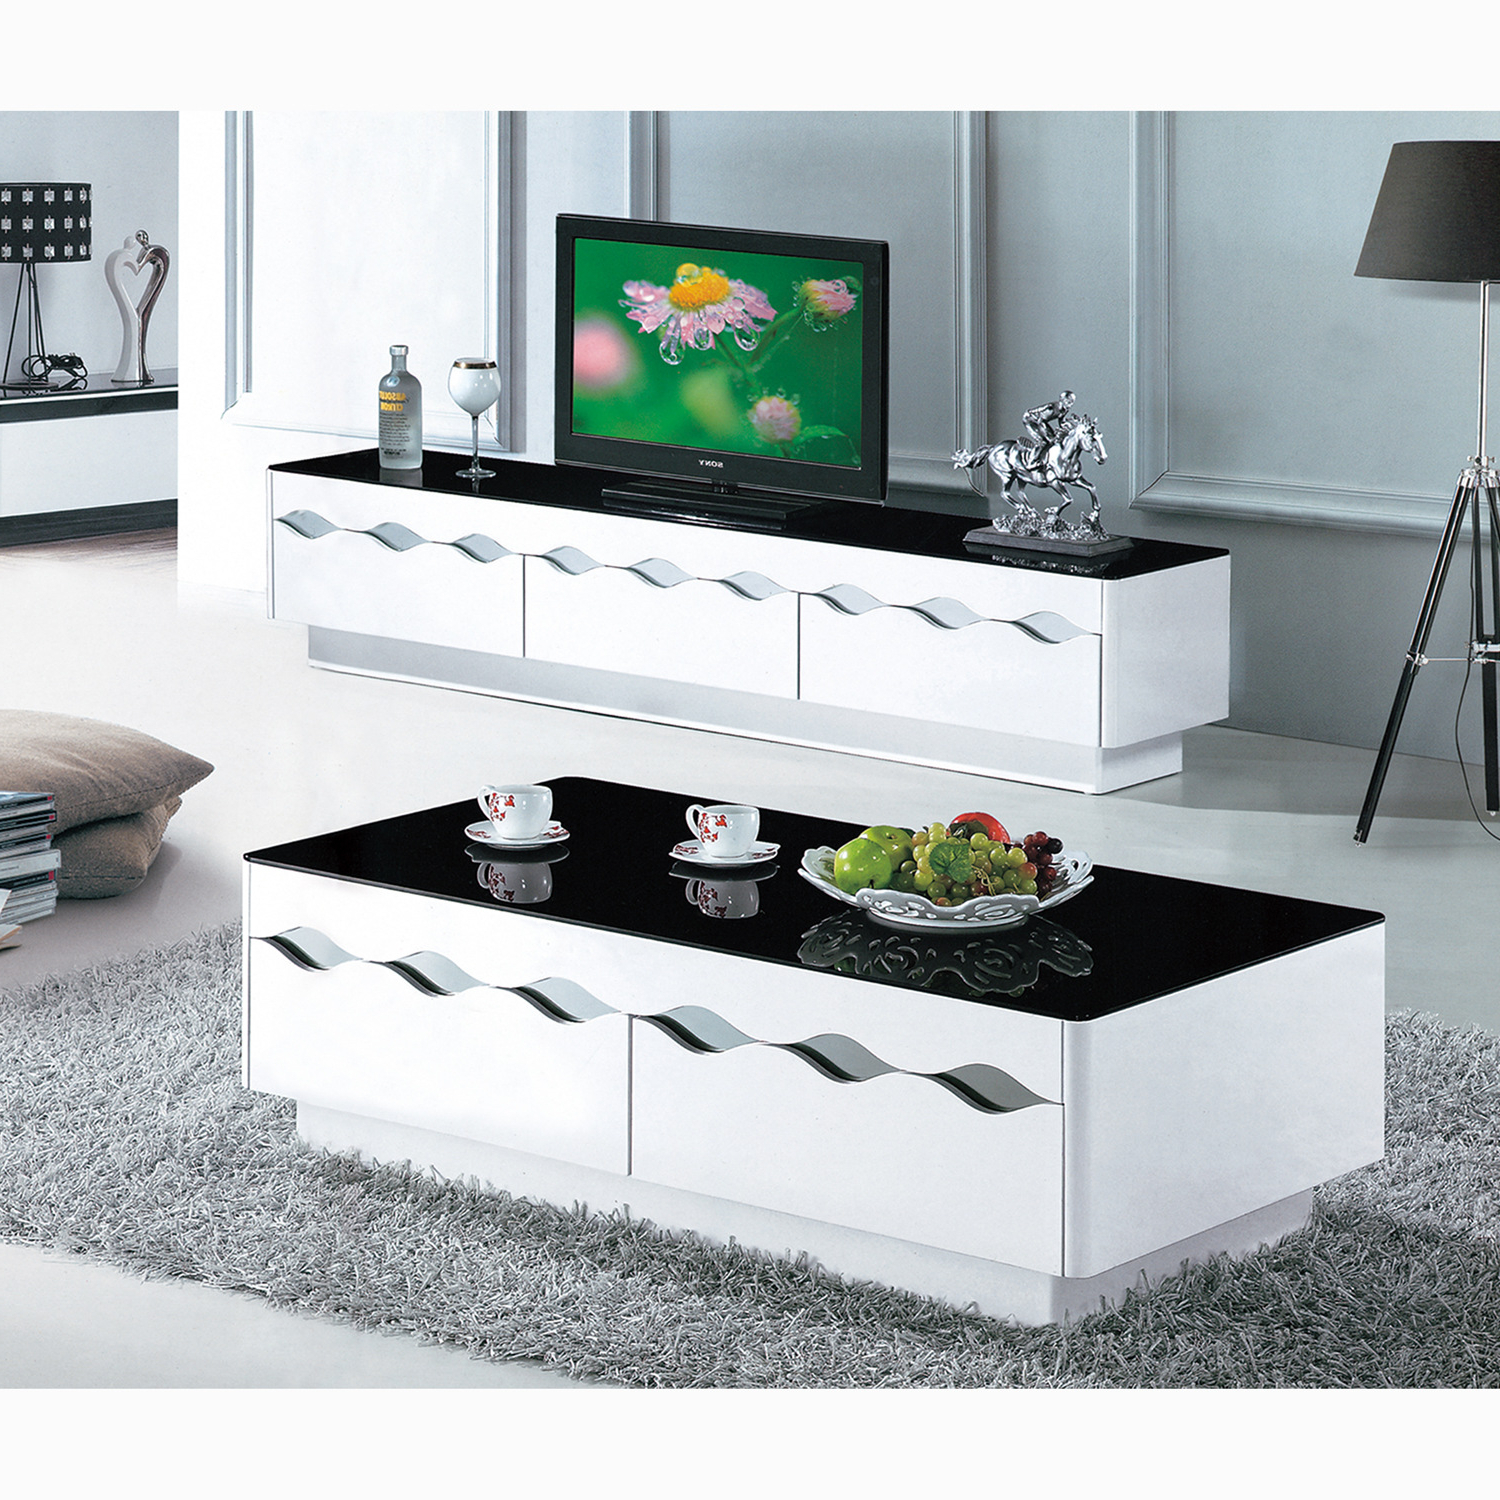 Coffee Table And Tv Console Cabinet With Doors Trays Walmart Within Fashionable Tv Cabinets And Coffee Table Sets (Gallery 2 of 20)